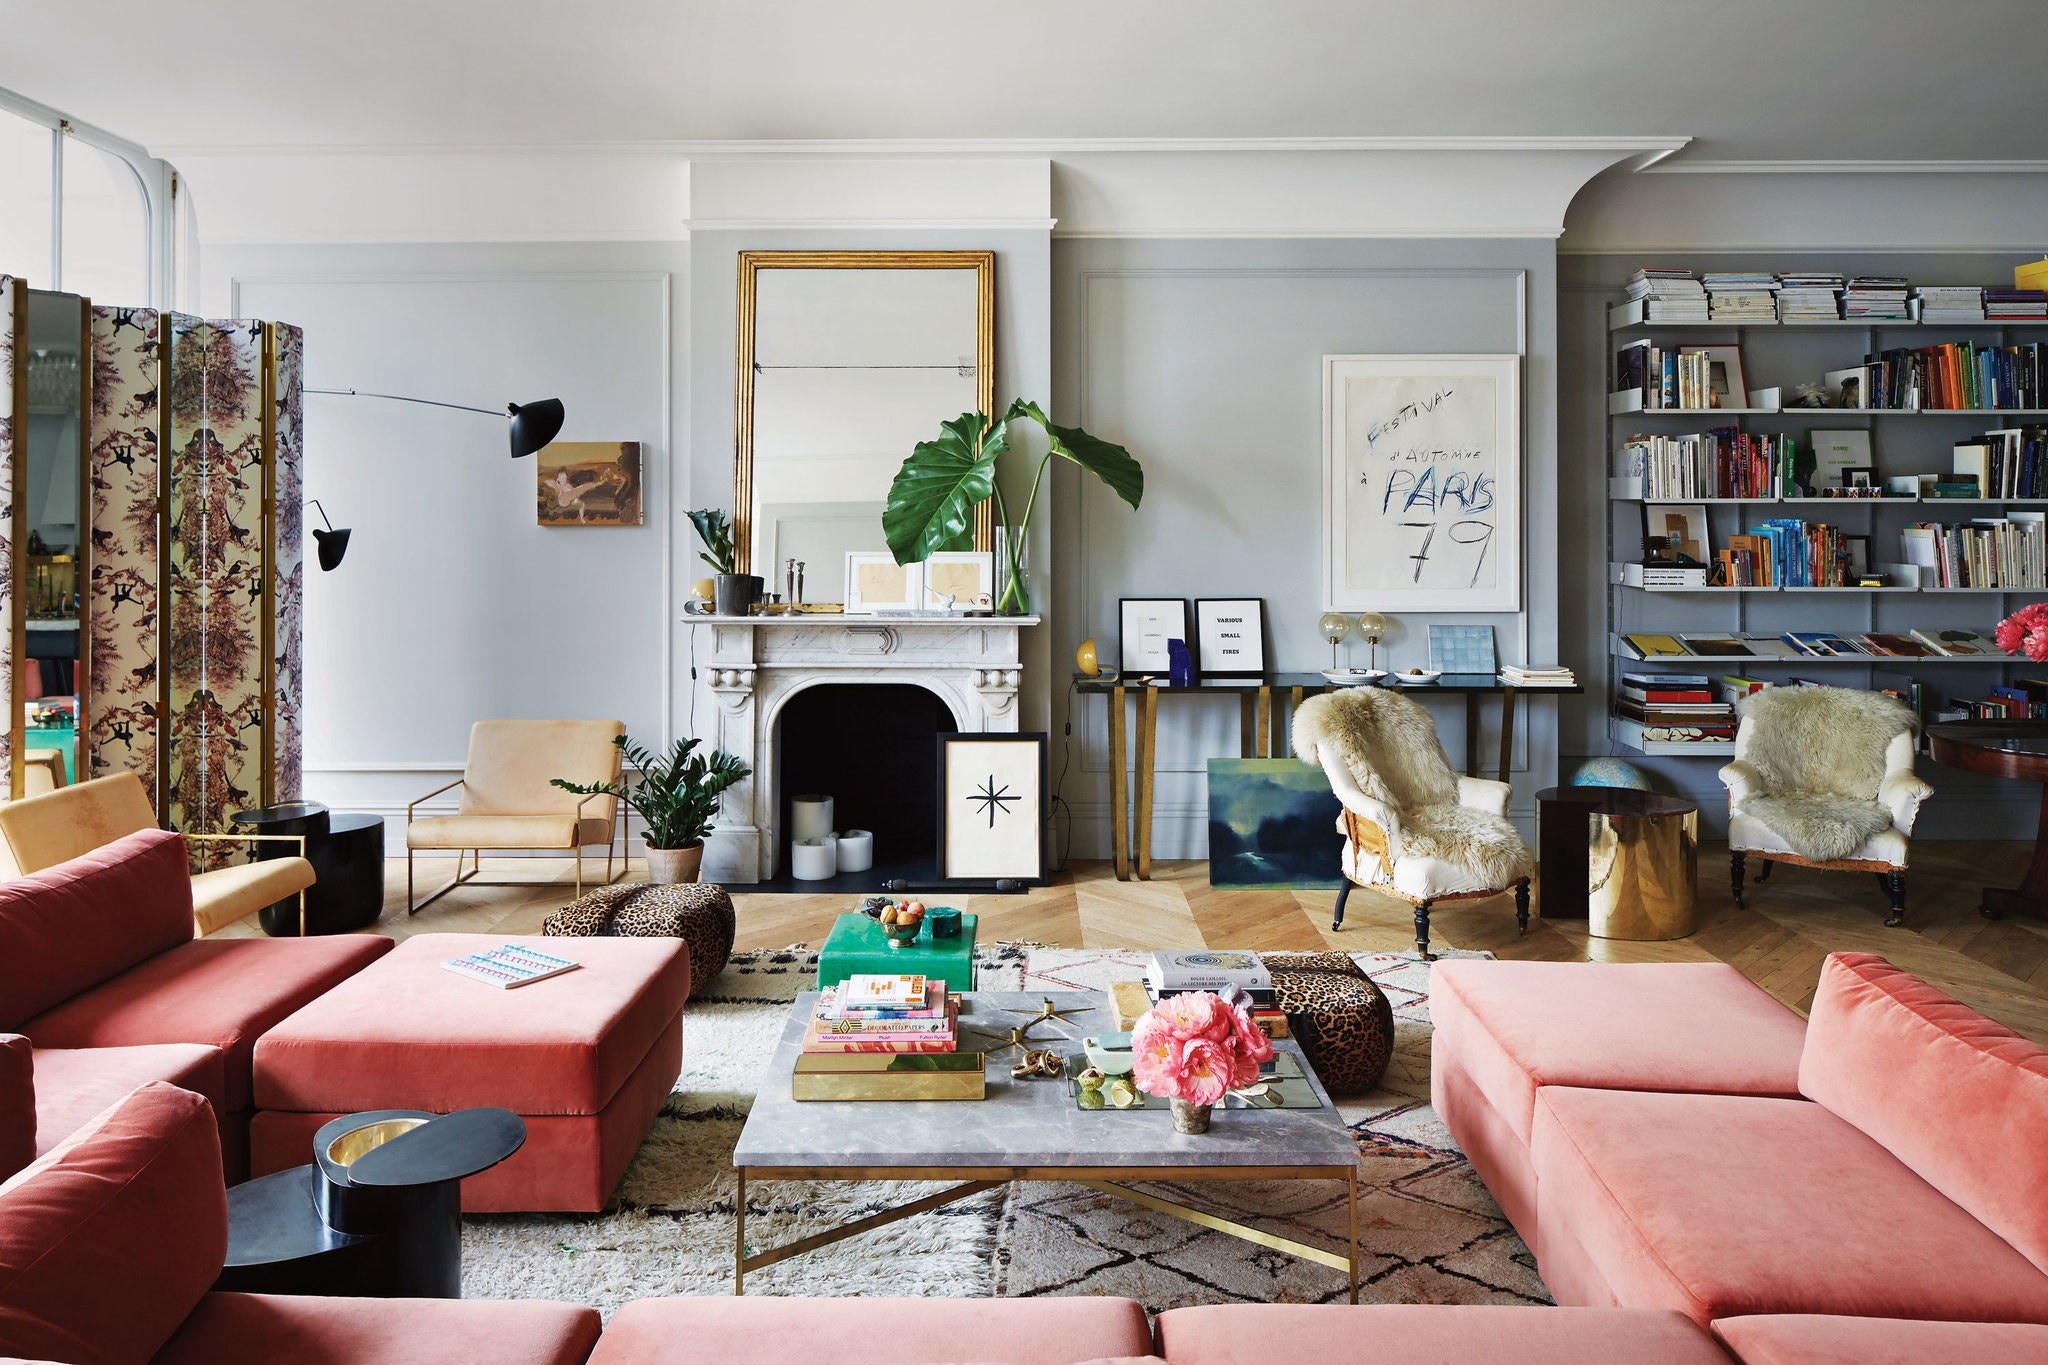 The Nordroom - The Colorful SoHo Loft of Jenna Lyon